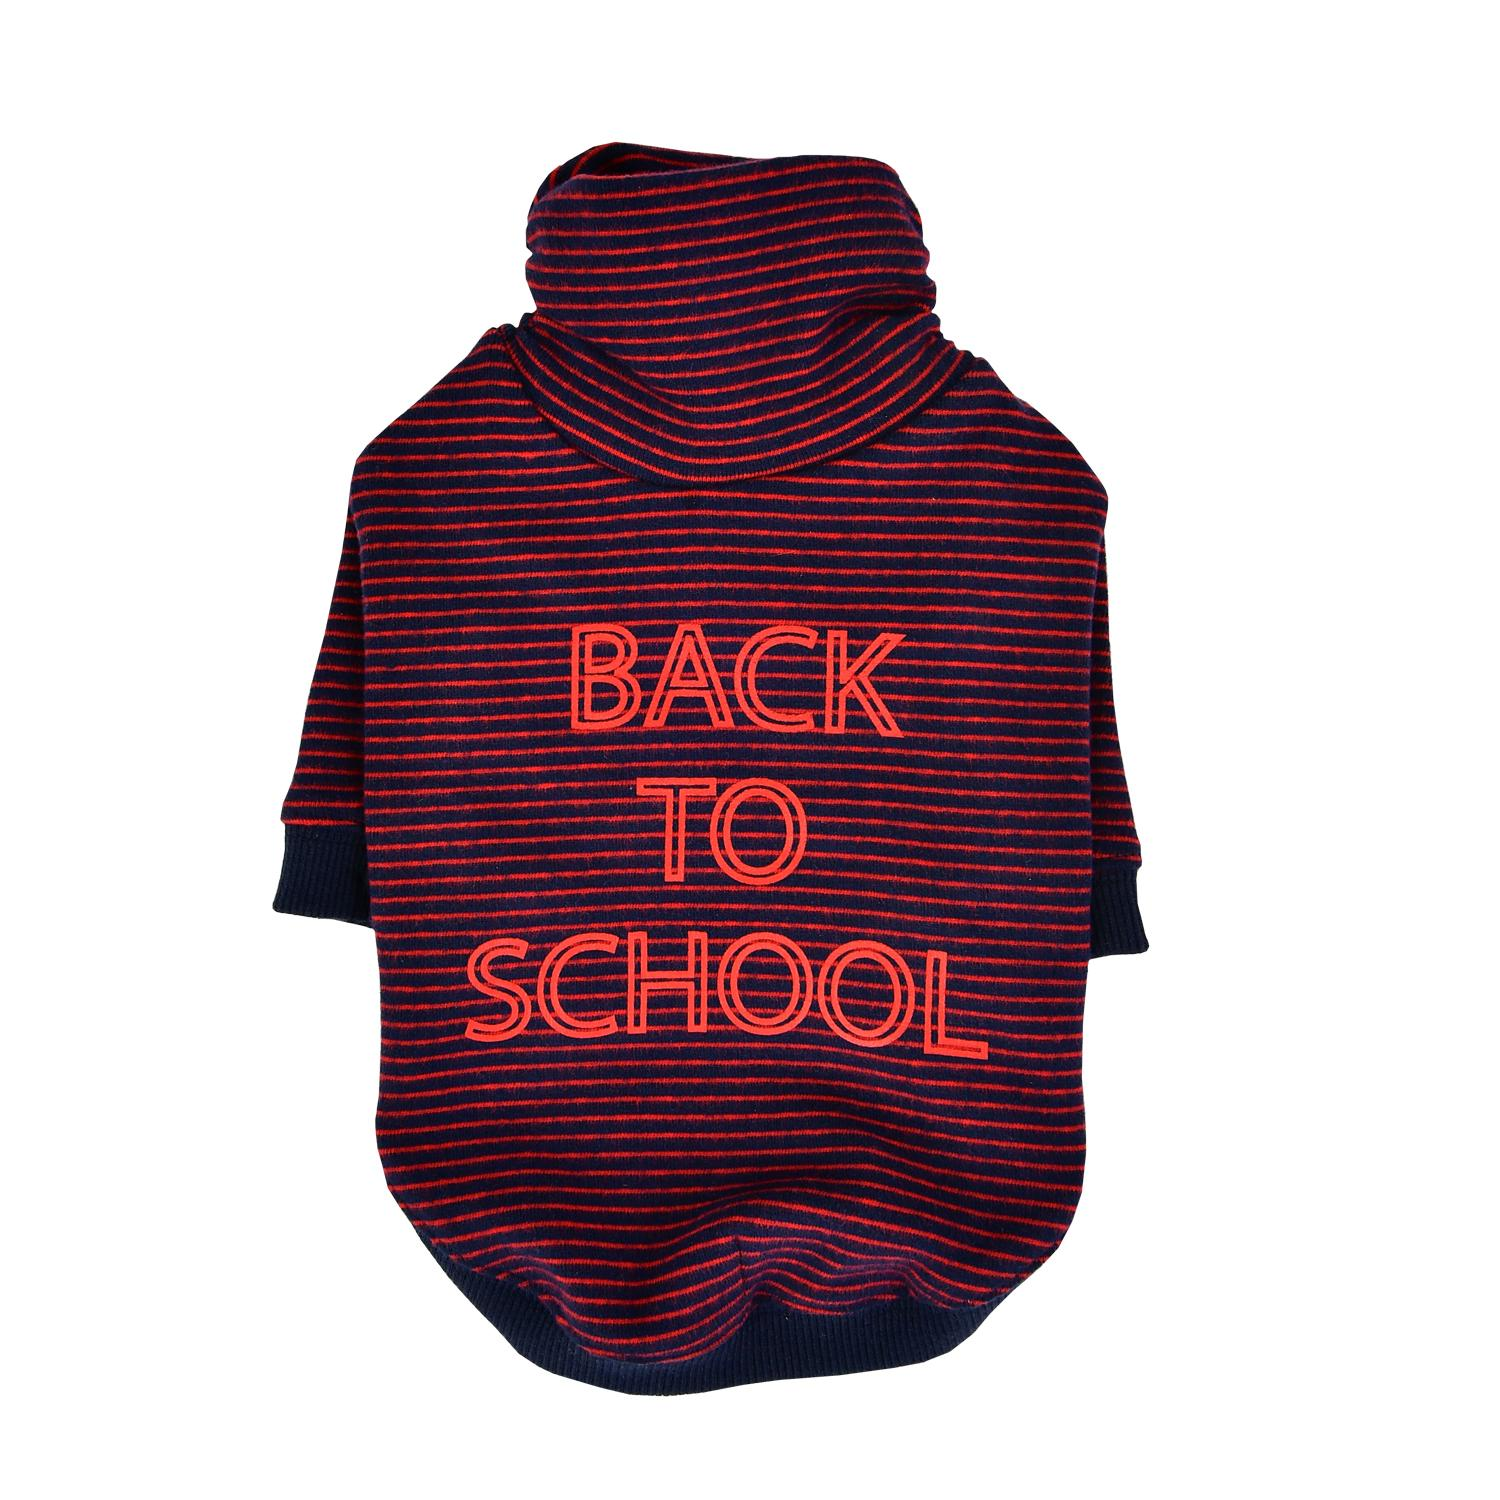 Back To School Dog Shirt by Puppia - Wine